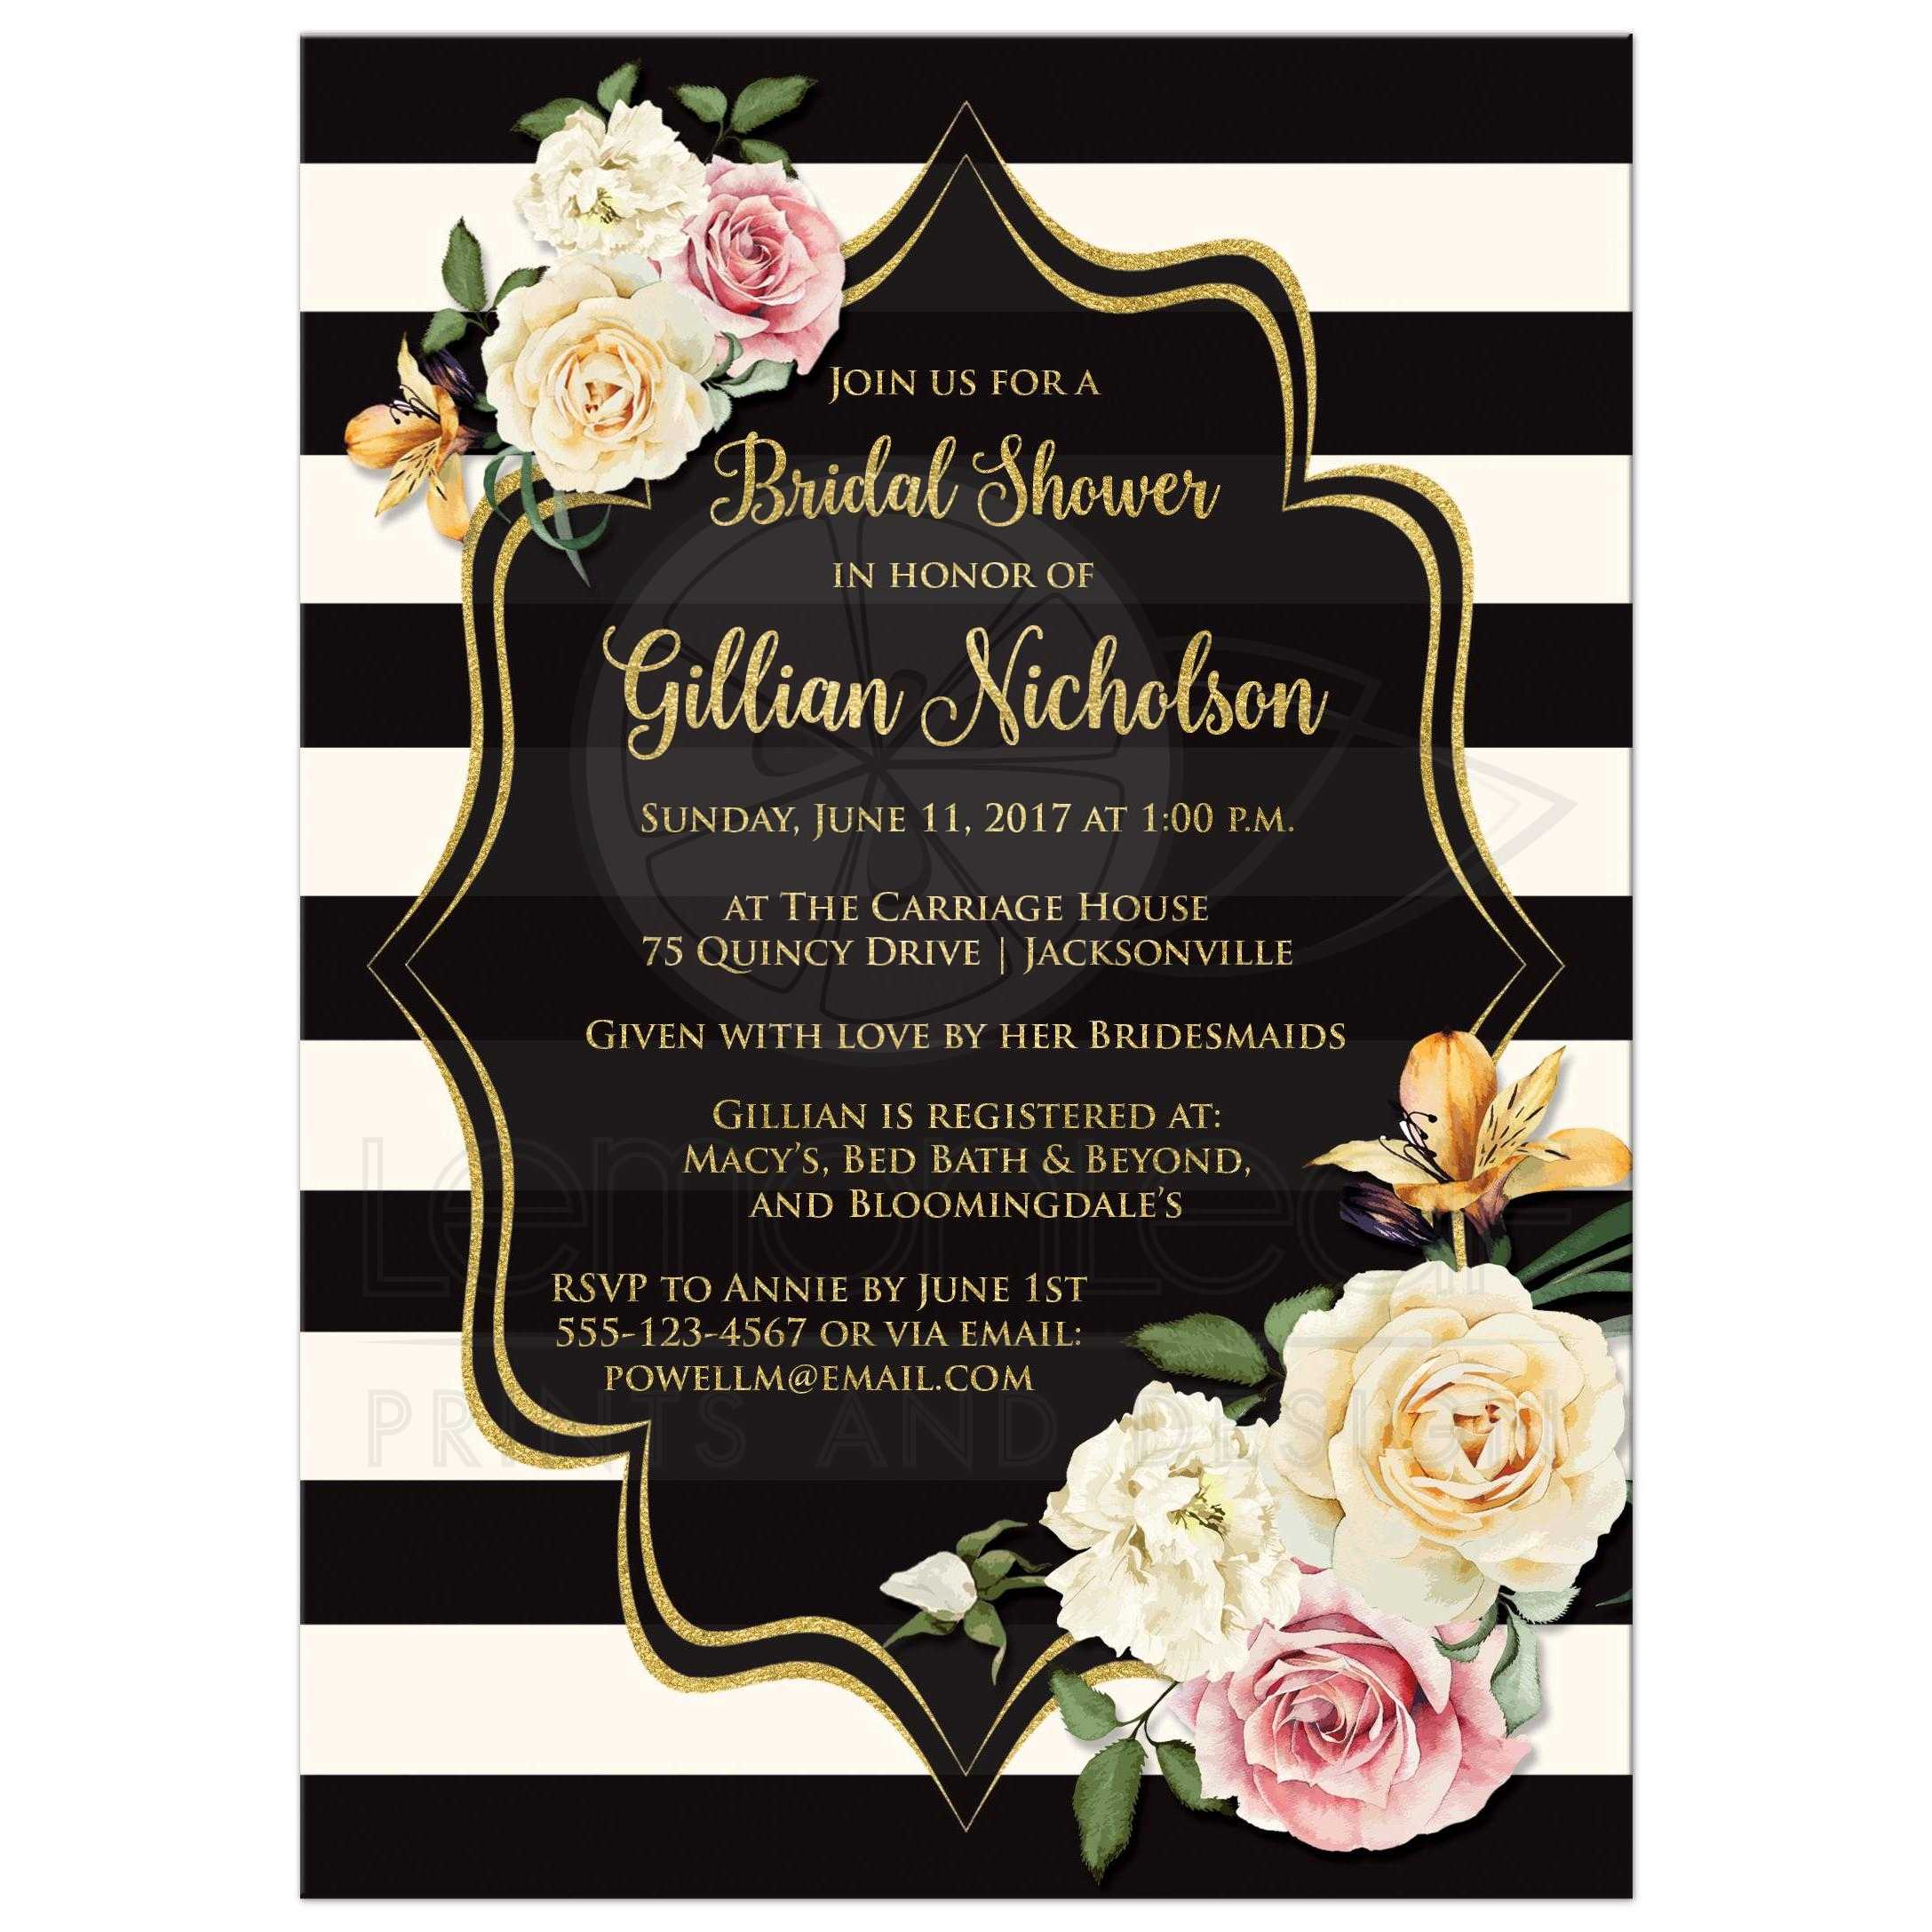 Couples Wedding Shower Invitations as perfect invitations ideas